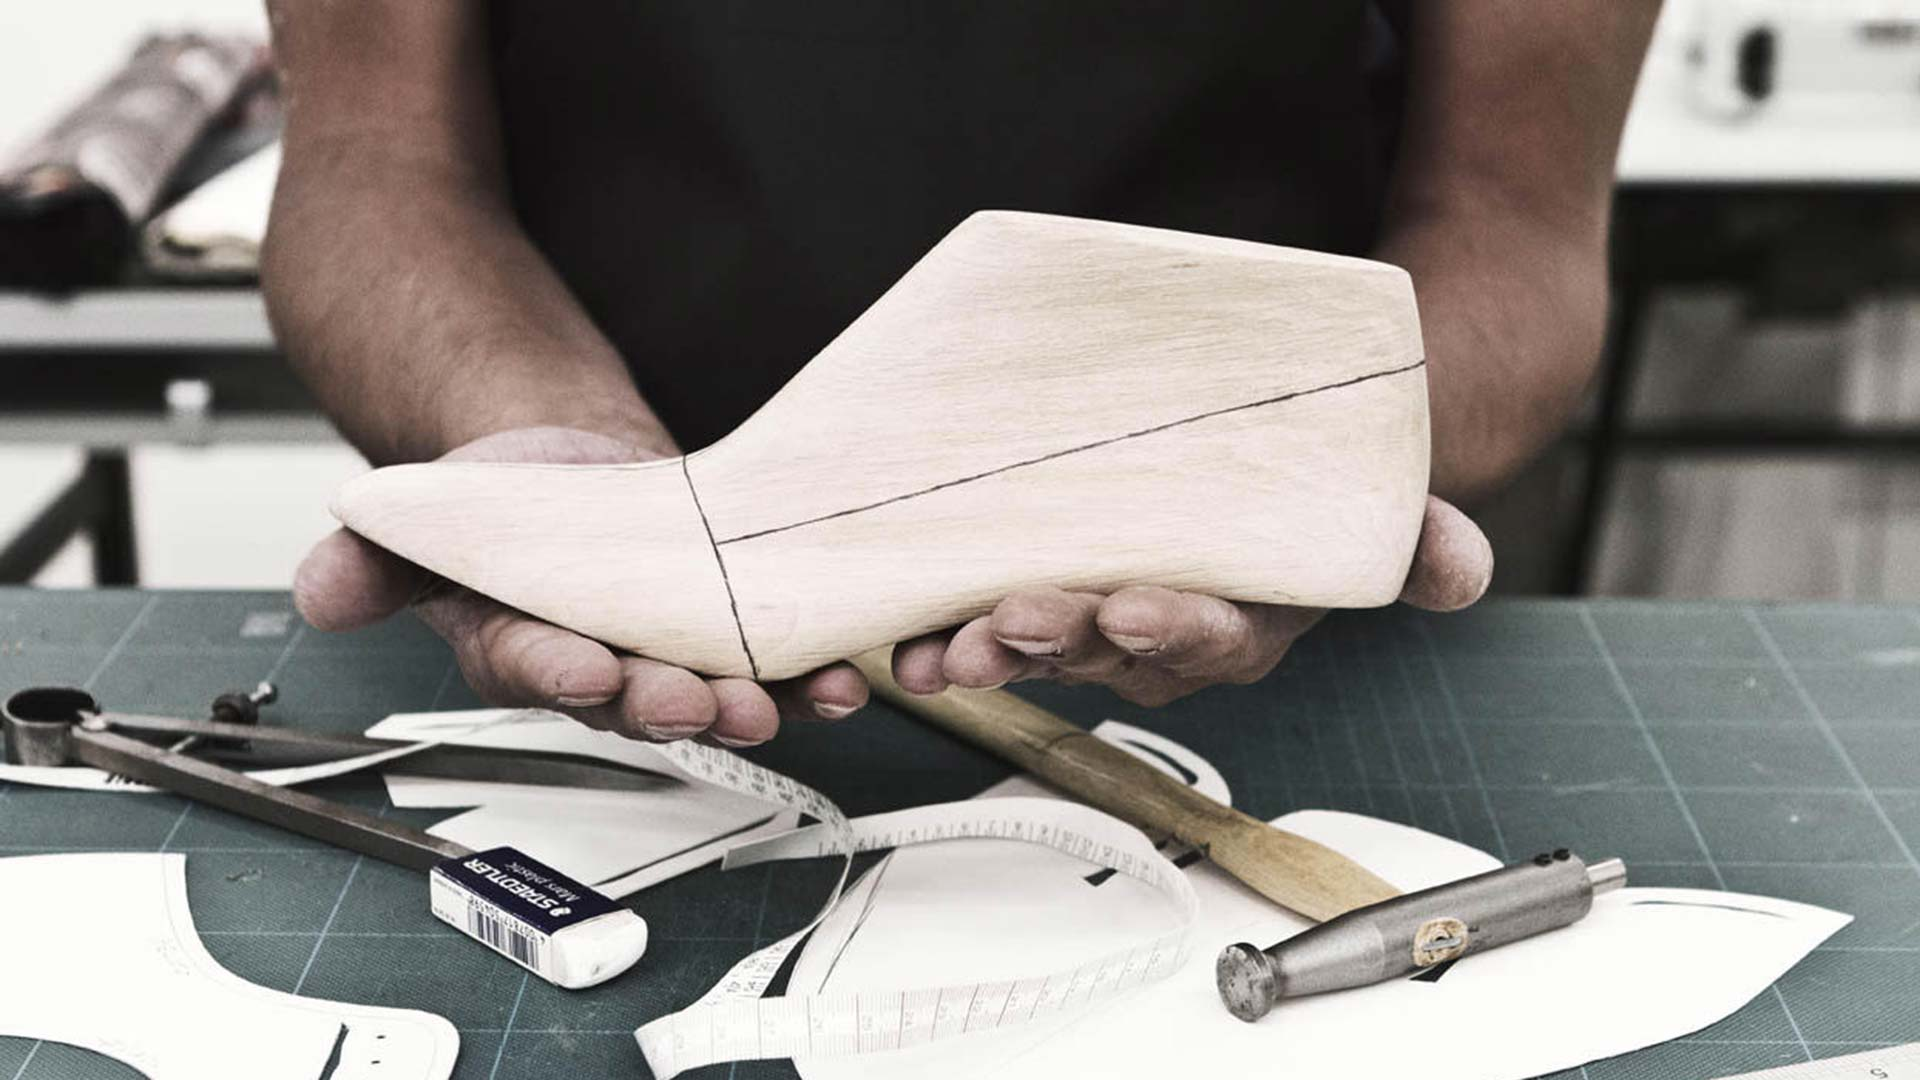 Footwear pattern making and prototyping course